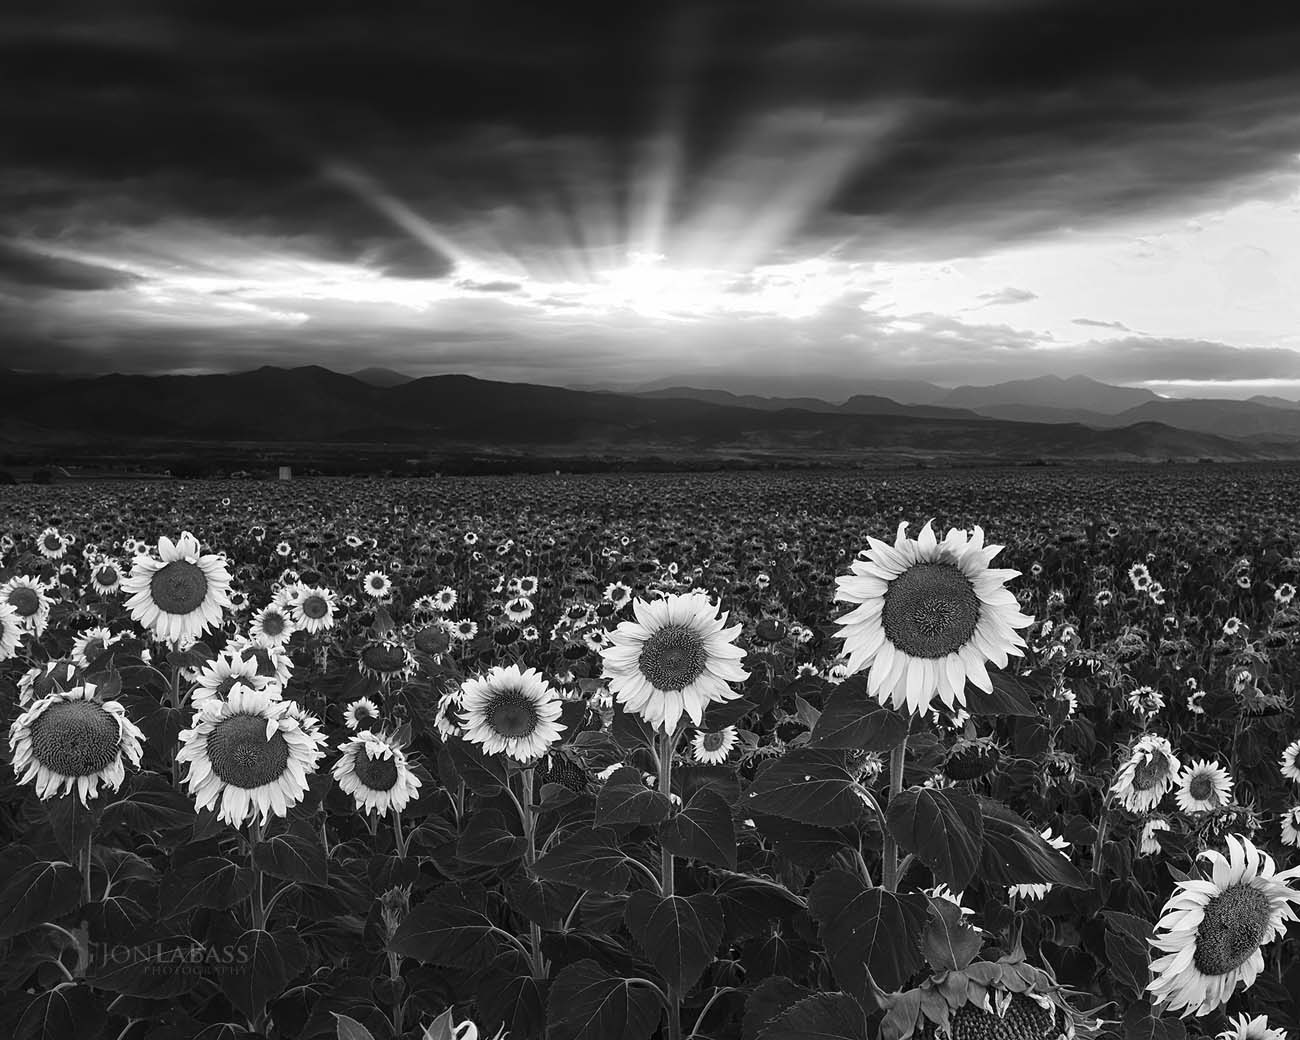 Black & White, Black and White, Clouds, Colorado, Evening, Flowers, Niwot, Sunburst, Sunflowers, Sunset, United States